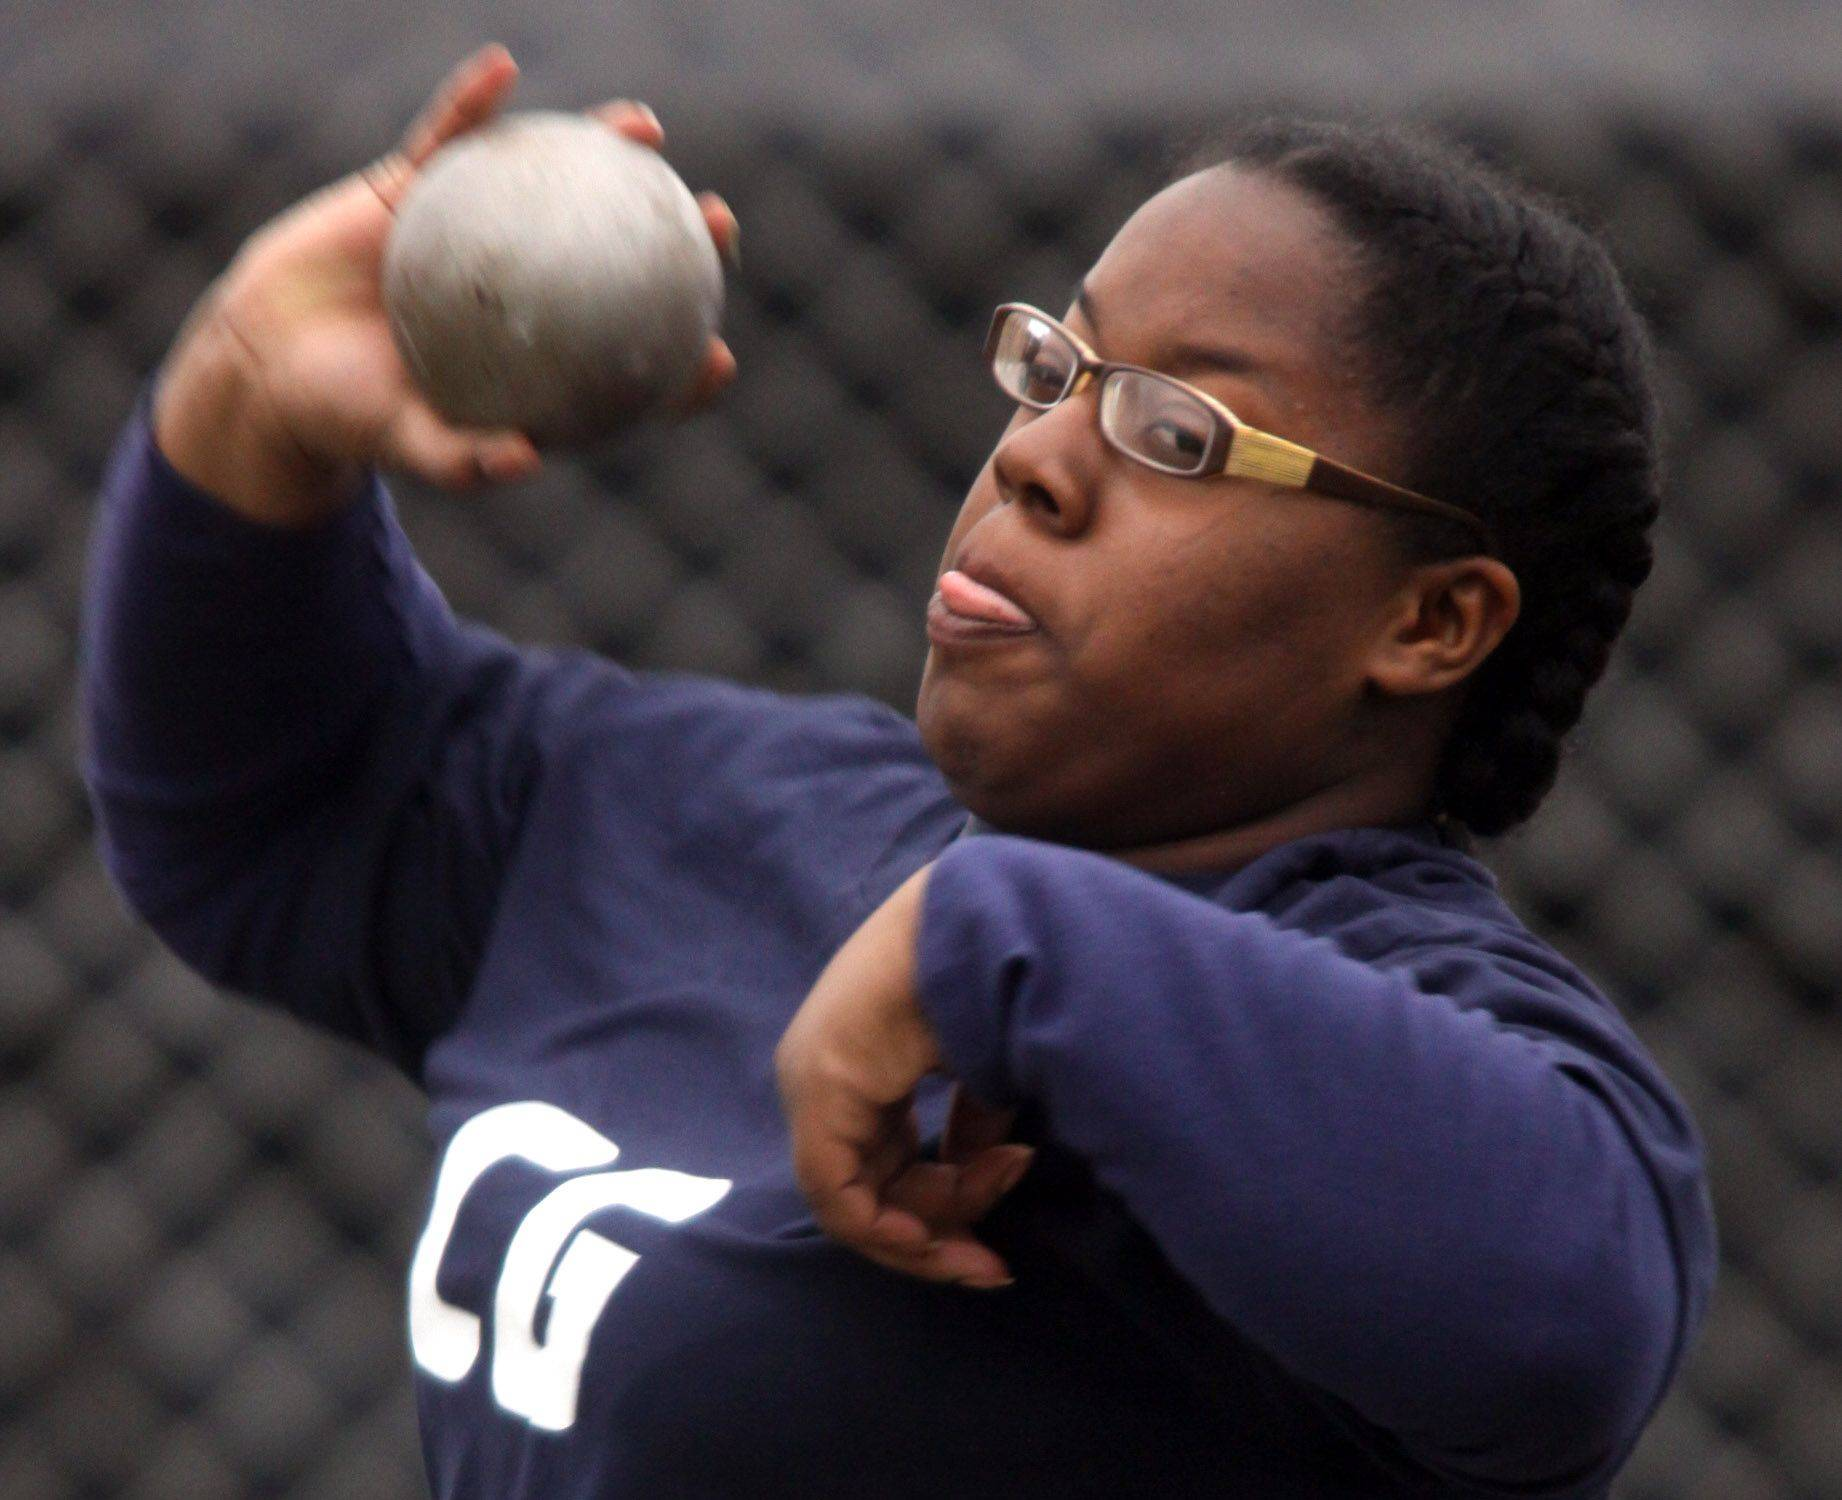 Ketura Taylor of Cary-Grove competes in the shot put during the McHenry County Track and Field Meet at Metcalf Field on the campus of Crystal Lake Central on Wednesday evening.